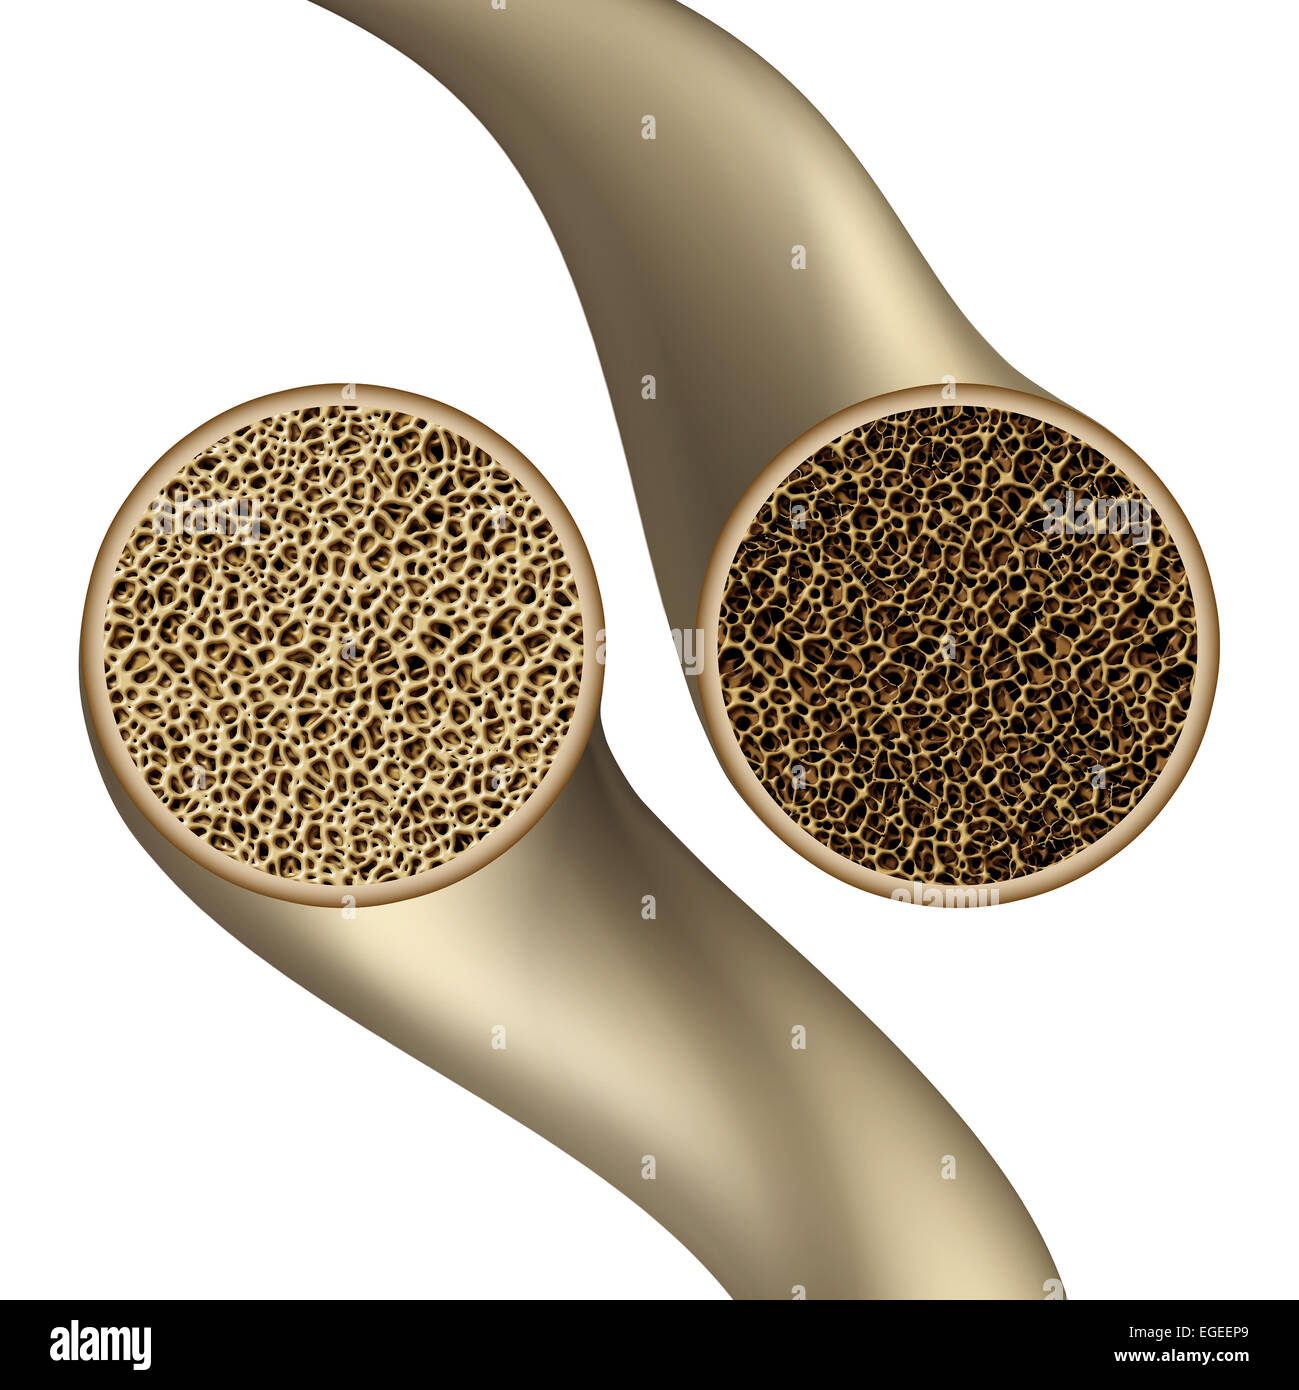 Bone health symbol as an osteoporosis medical illustration concept showing a close up comparison of human skeletal - Stock Image